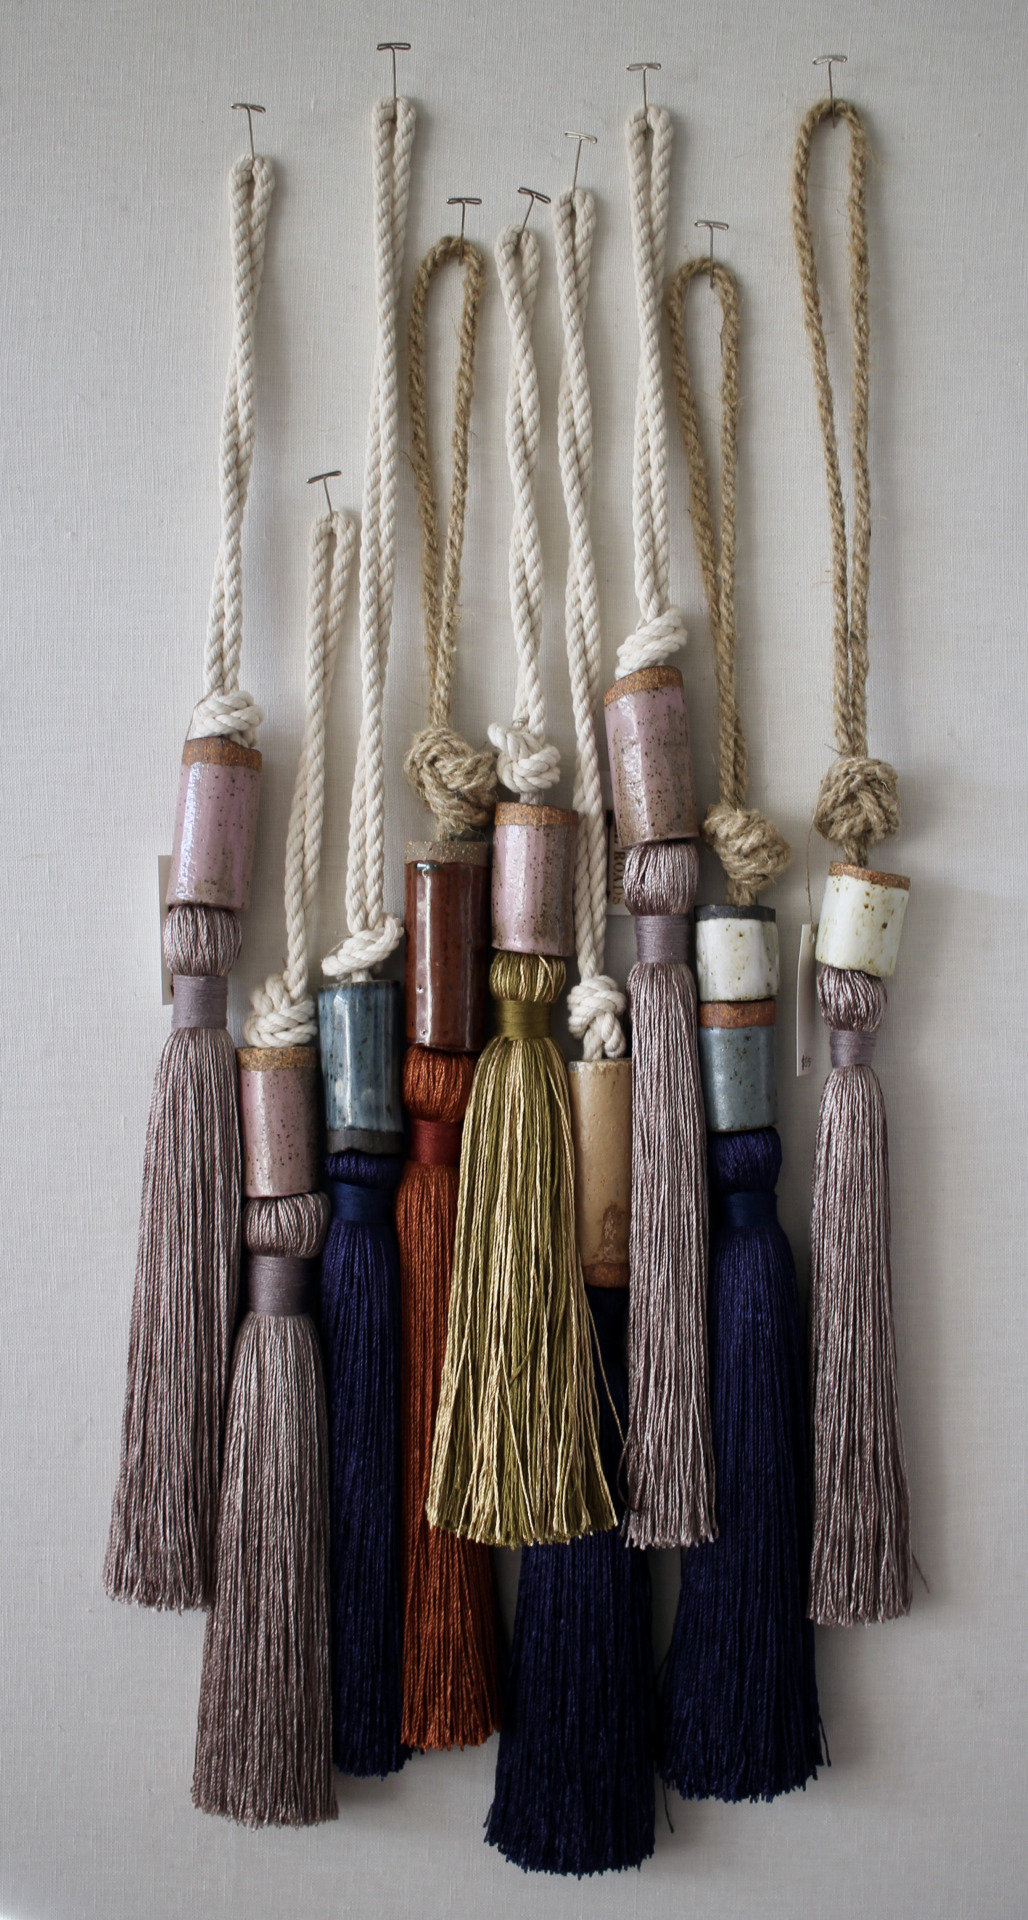 So Itu0027s Without Question That I Must Hoard All The Silk Tassels To Use As  Curtain Tie Backs, Door Tags And Even Simply Clustered To Hang Together On  A Wall.